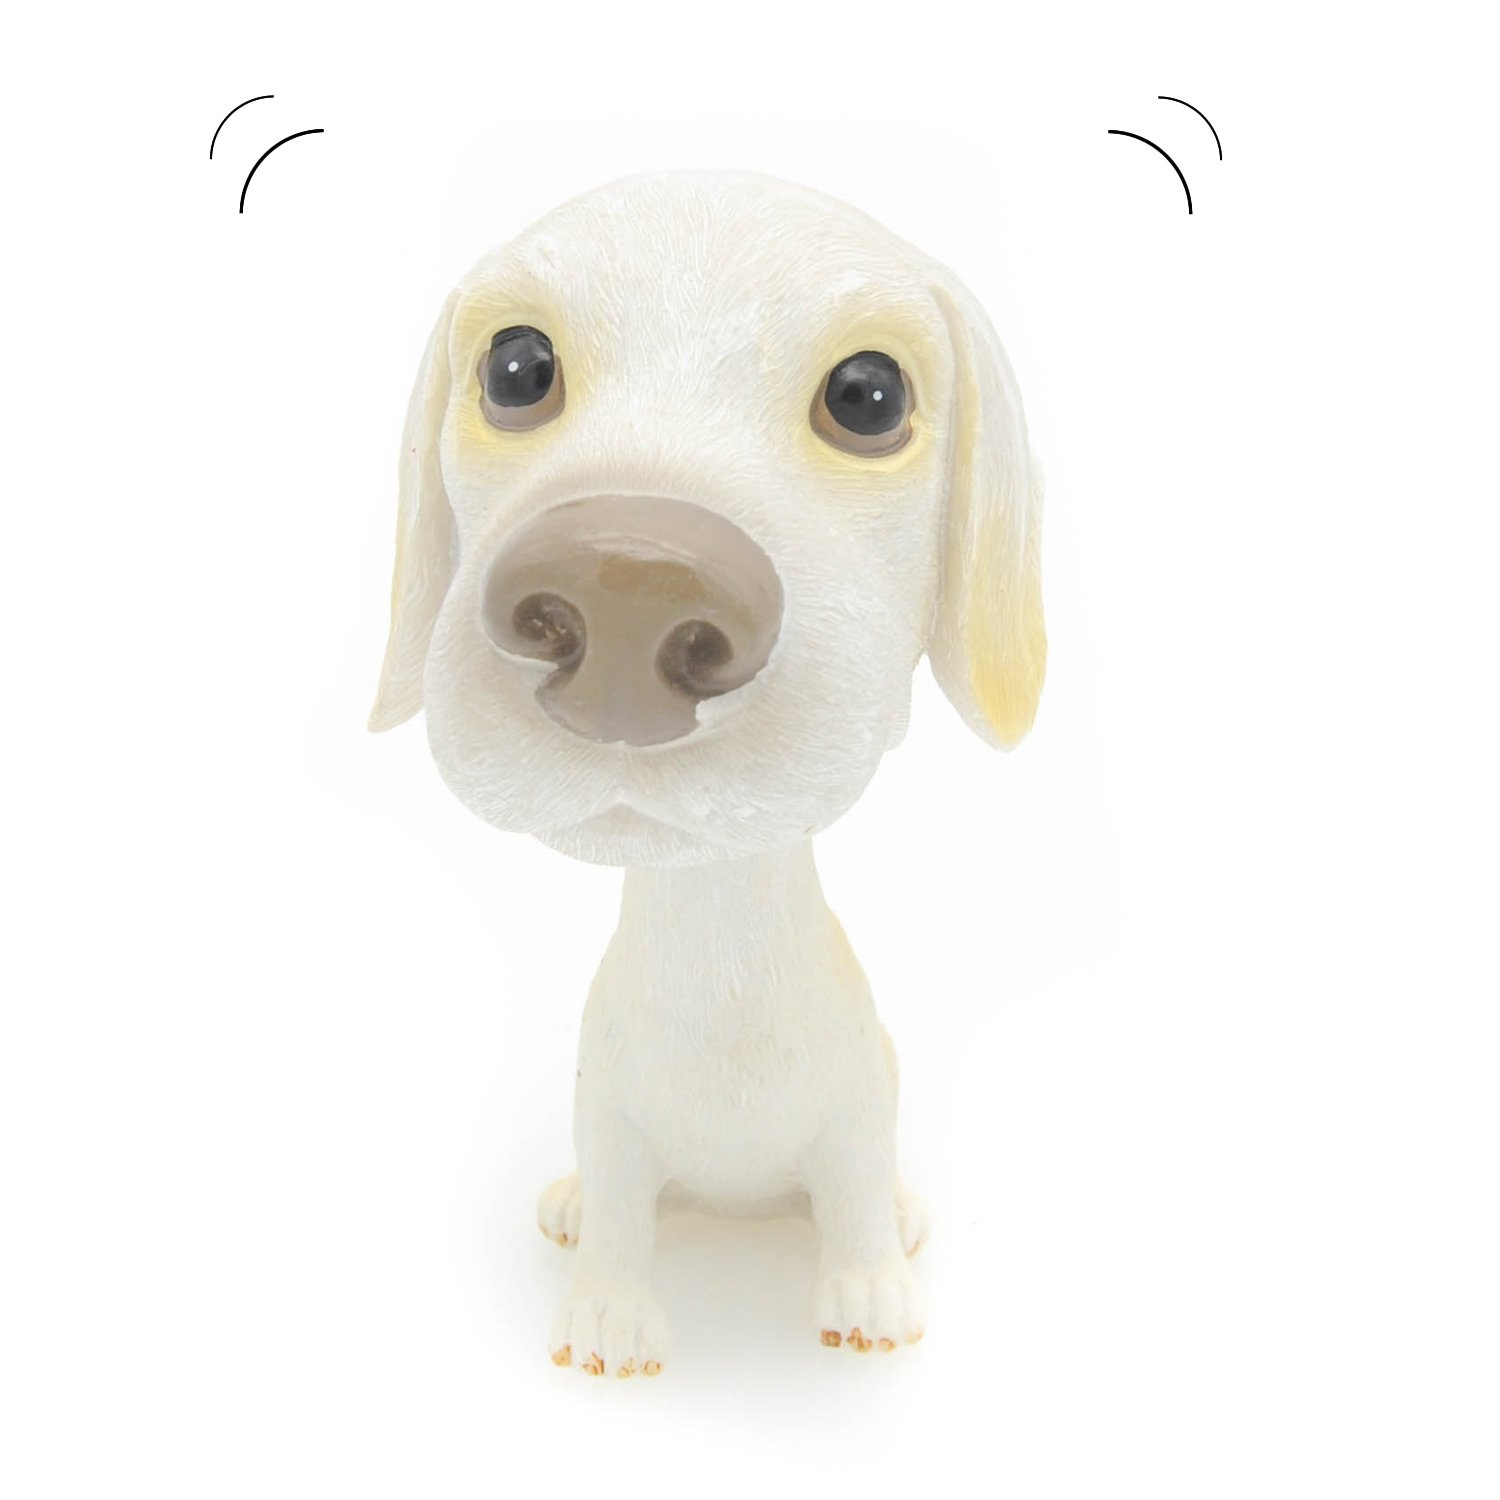 Velener Nodding Dog Ornaments Mini Bobble-Head Toys for Car Decoration (Small Swiss Hound, White)